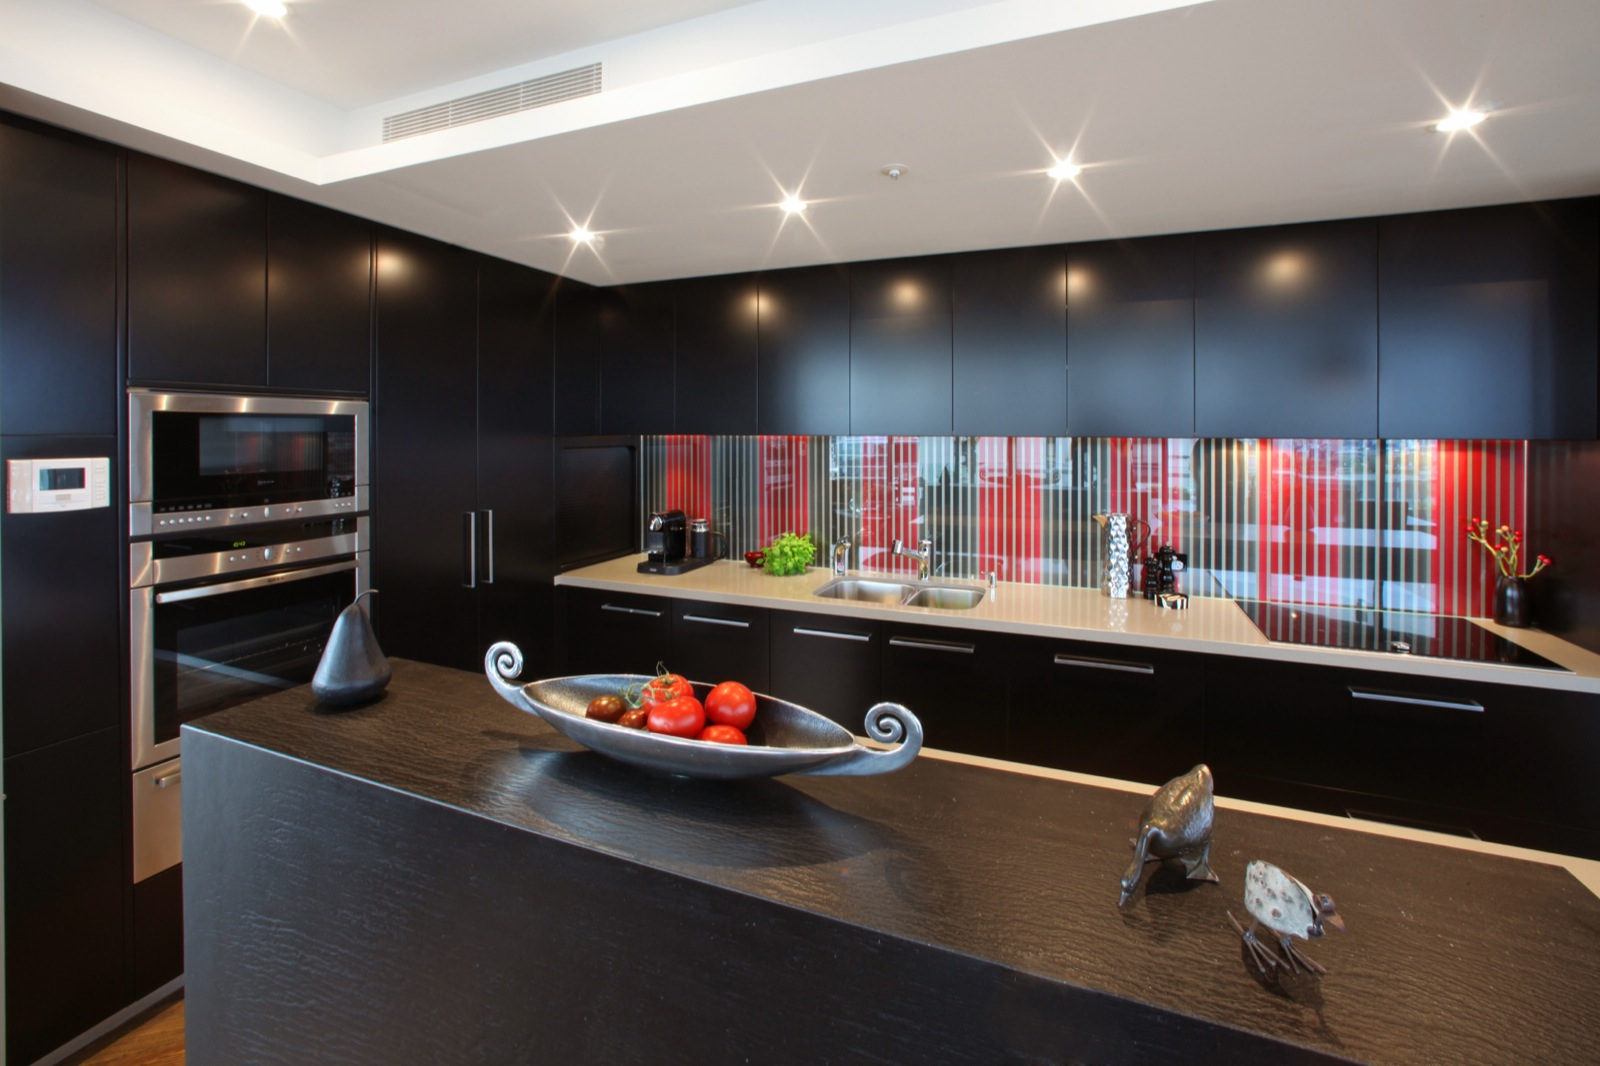 Black Furniture: Interior Design Photo Ideas. Oriental contemporary style of the kitchen with the black and red mix of colors